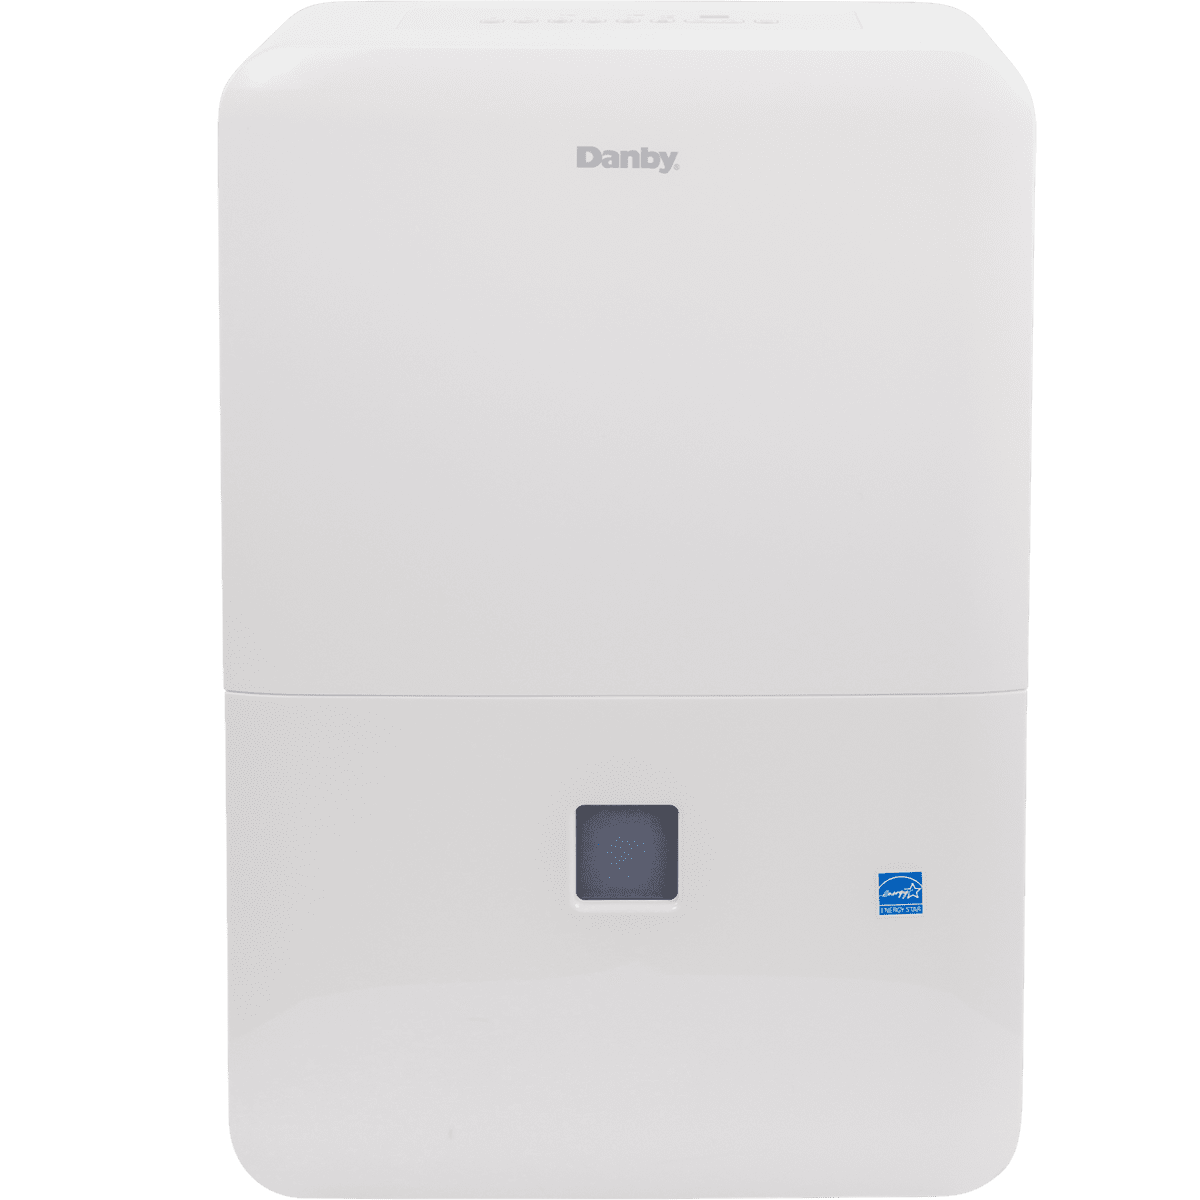 danby premiere dehumidifier dpac10071 manual